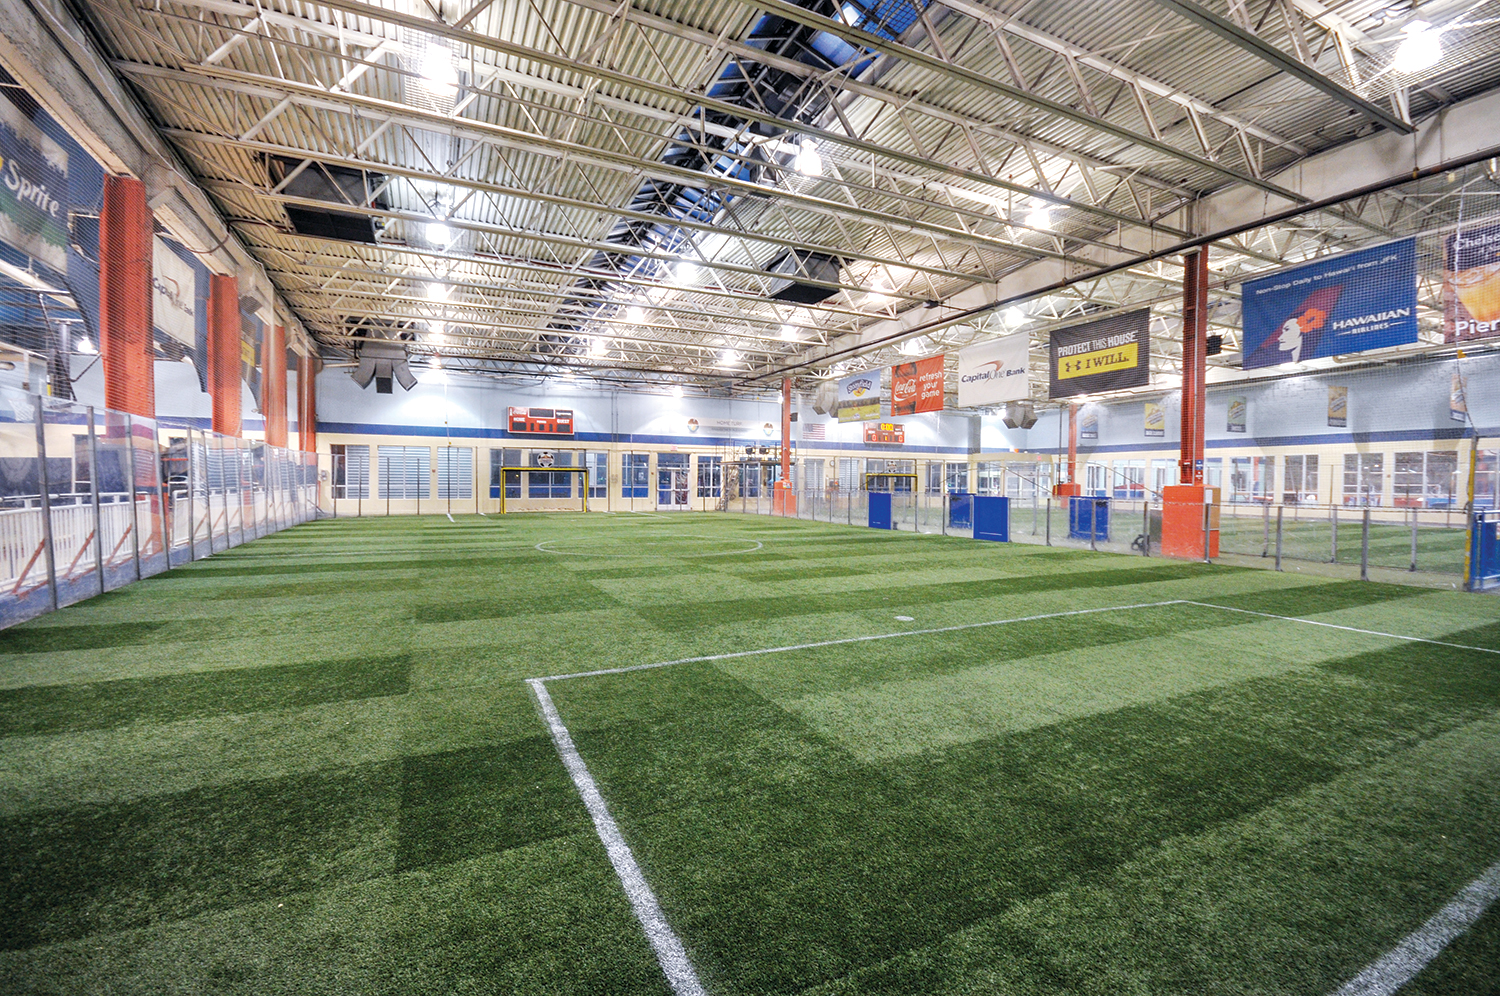 Field house chelsea piers nyc for House piers